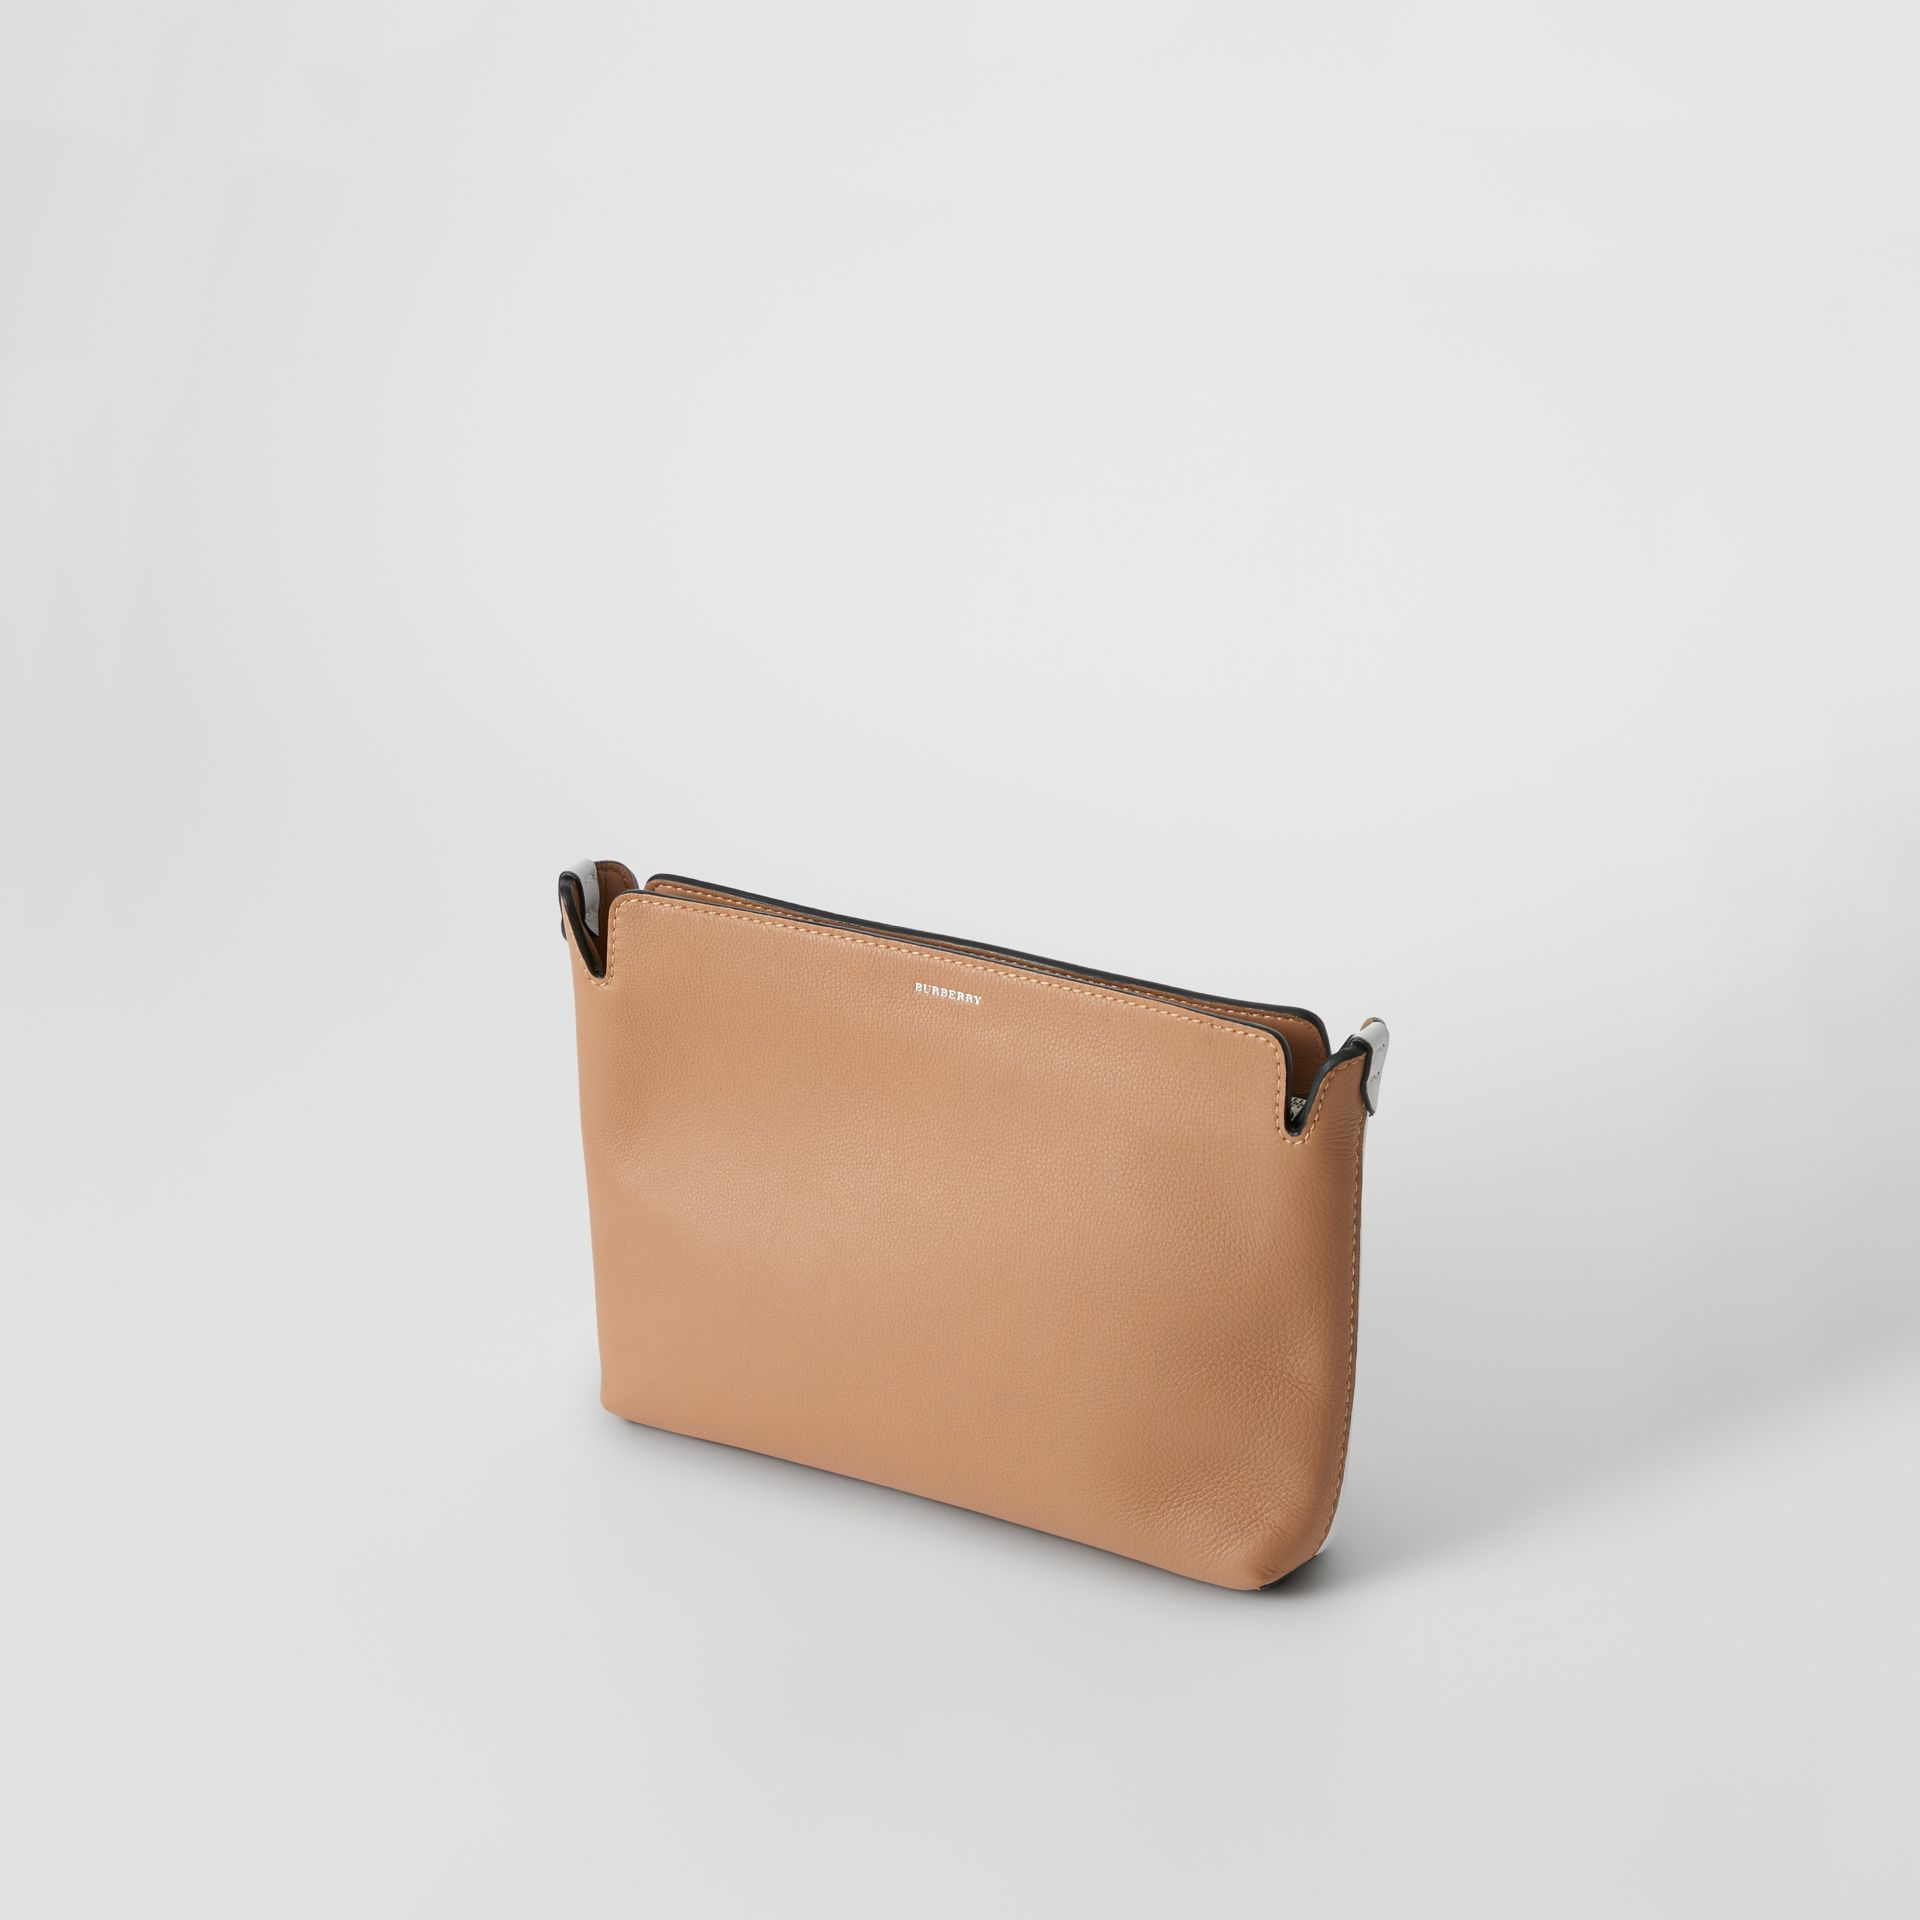 Medium Two-tone Leather Clutch in Light Camel/chalk White - Women | Burberry United States - gallery image 3